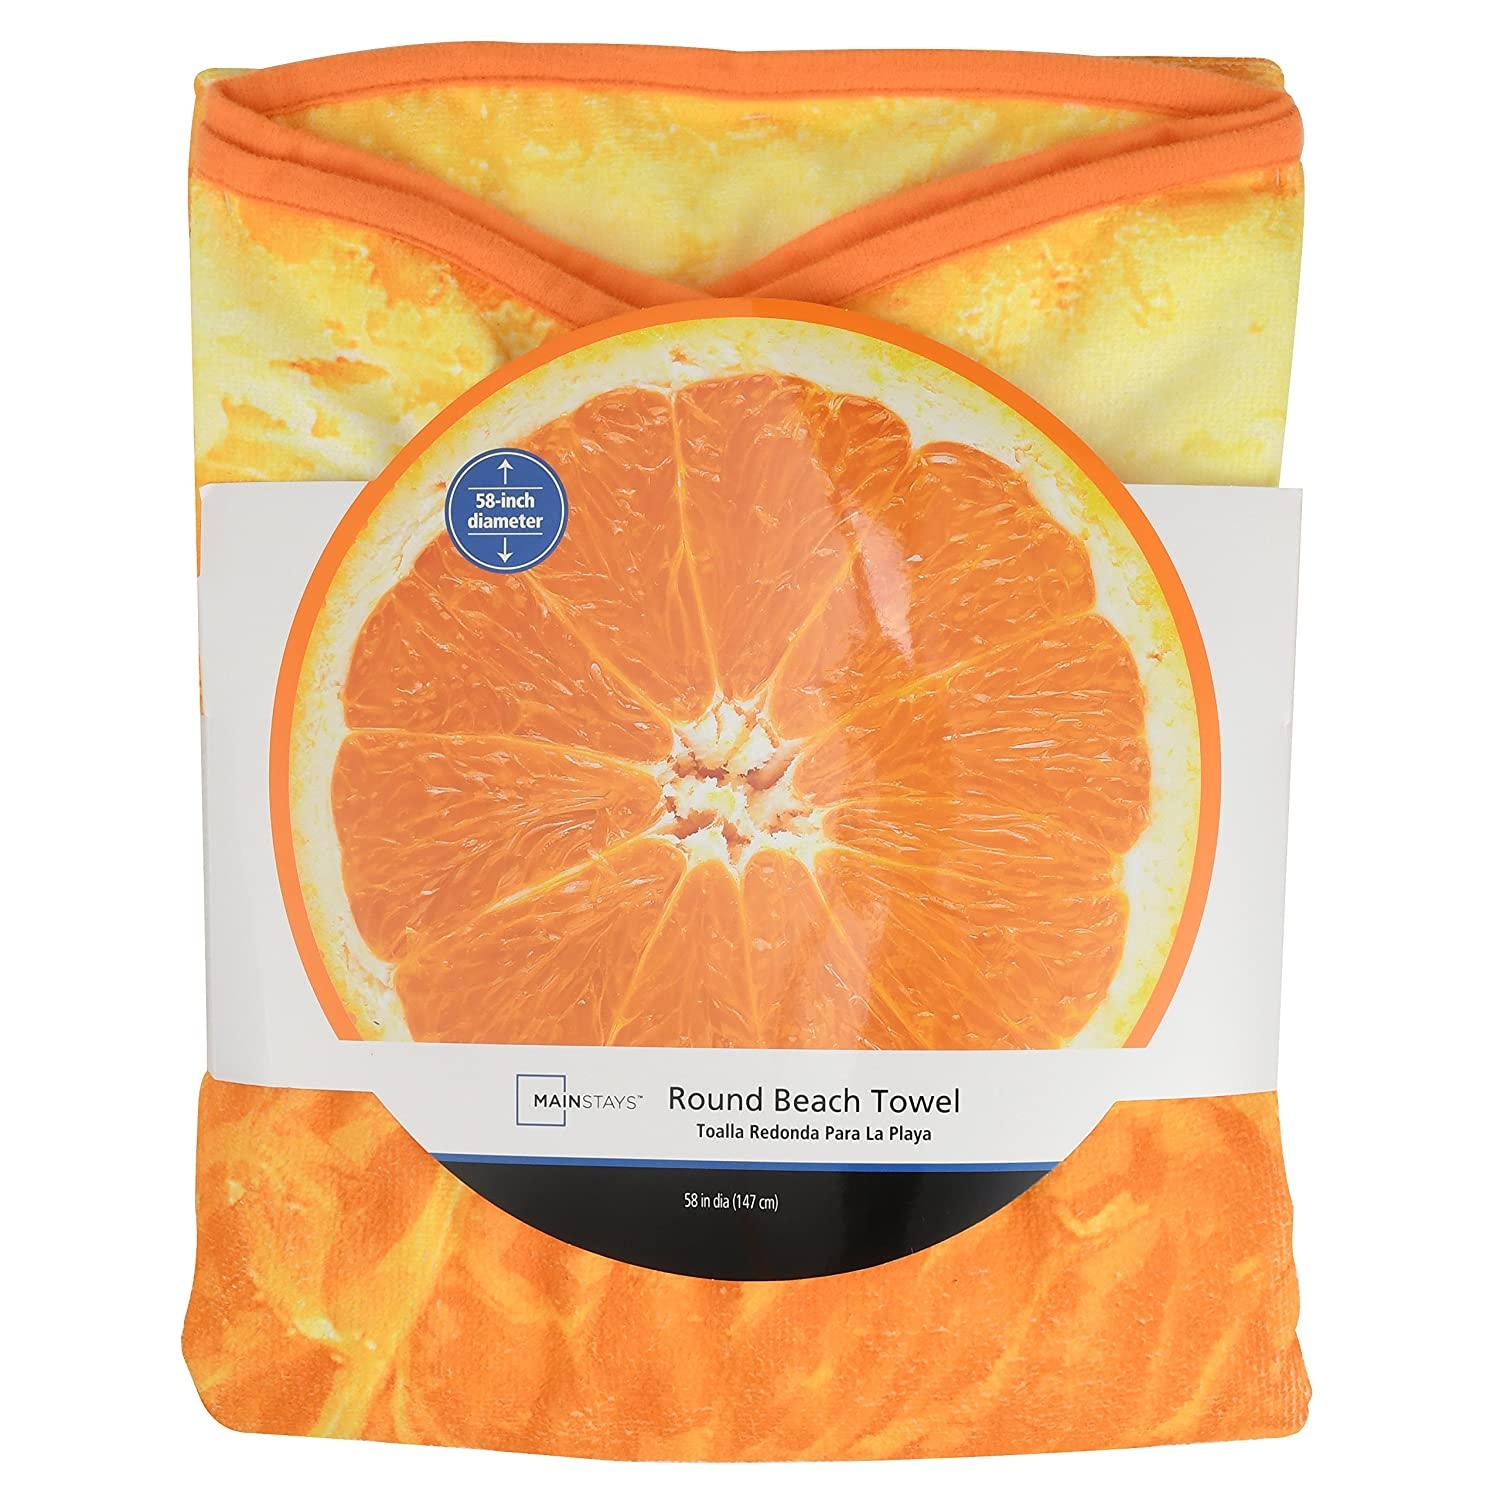 Amazon.com: Wal-Mart Mainstays Round Beach Towel Orange Fruit 58